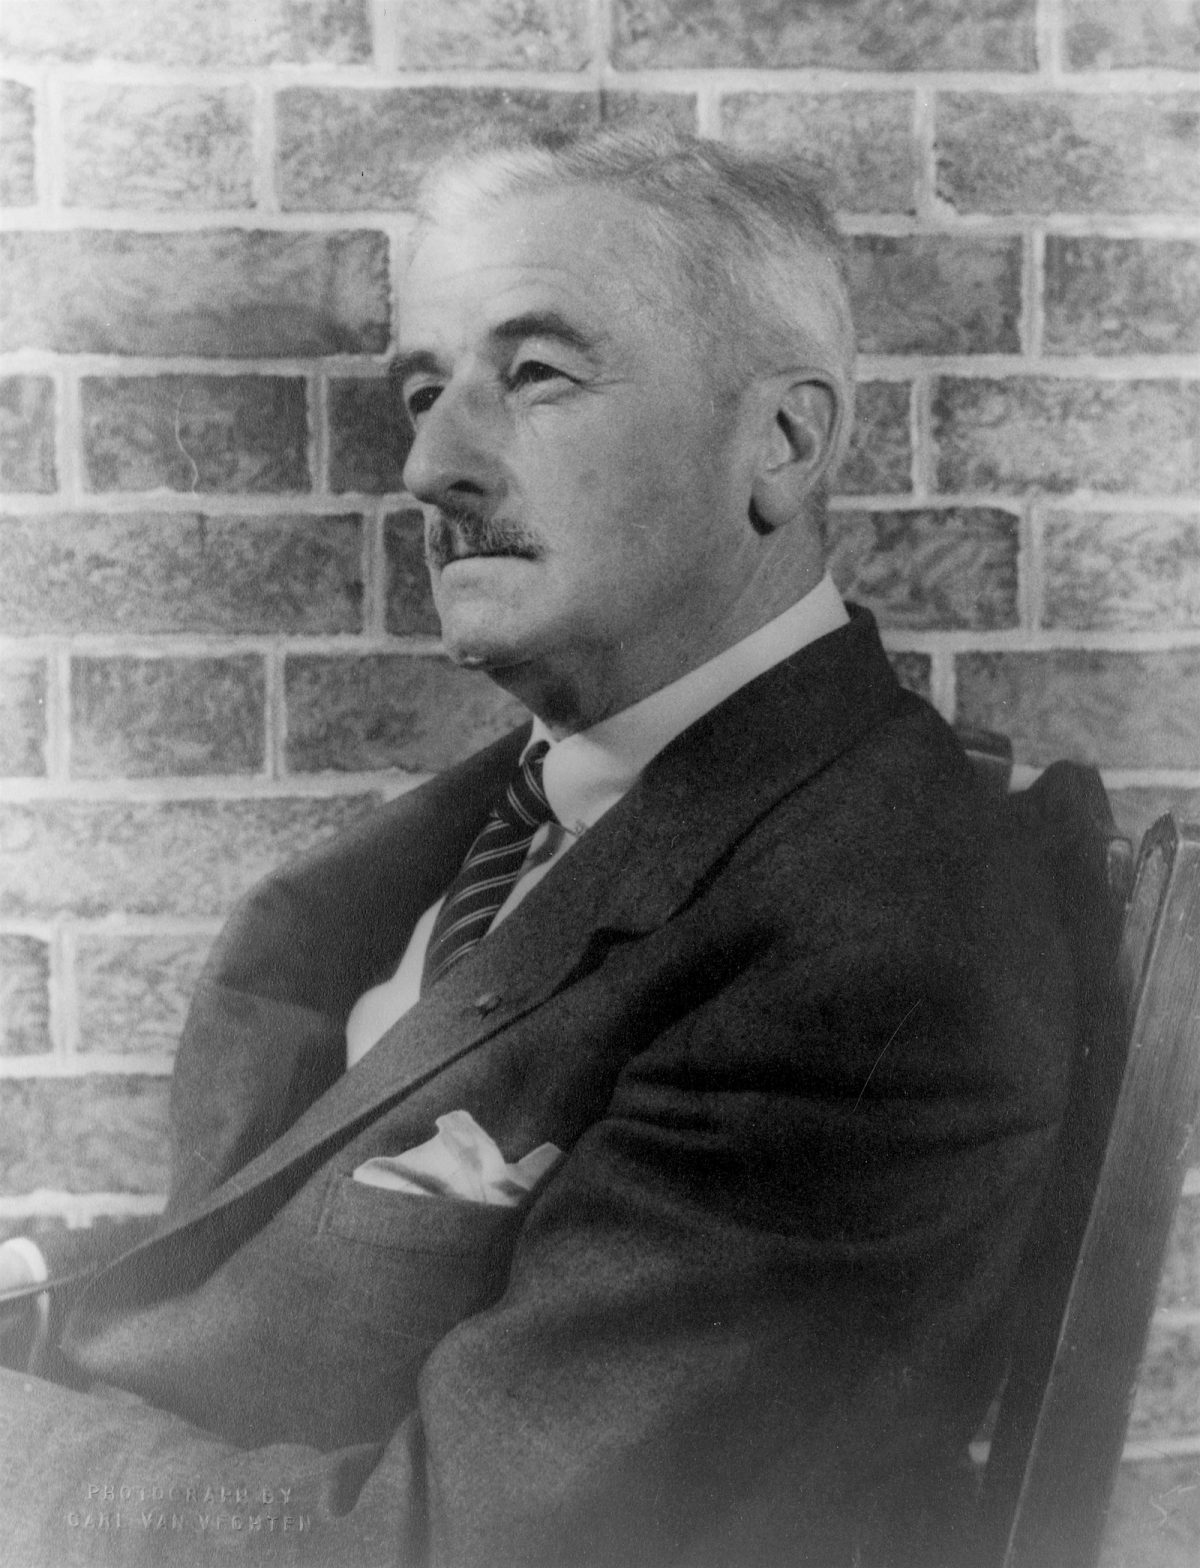 William Faulkner, Carl Van Vechten, photography